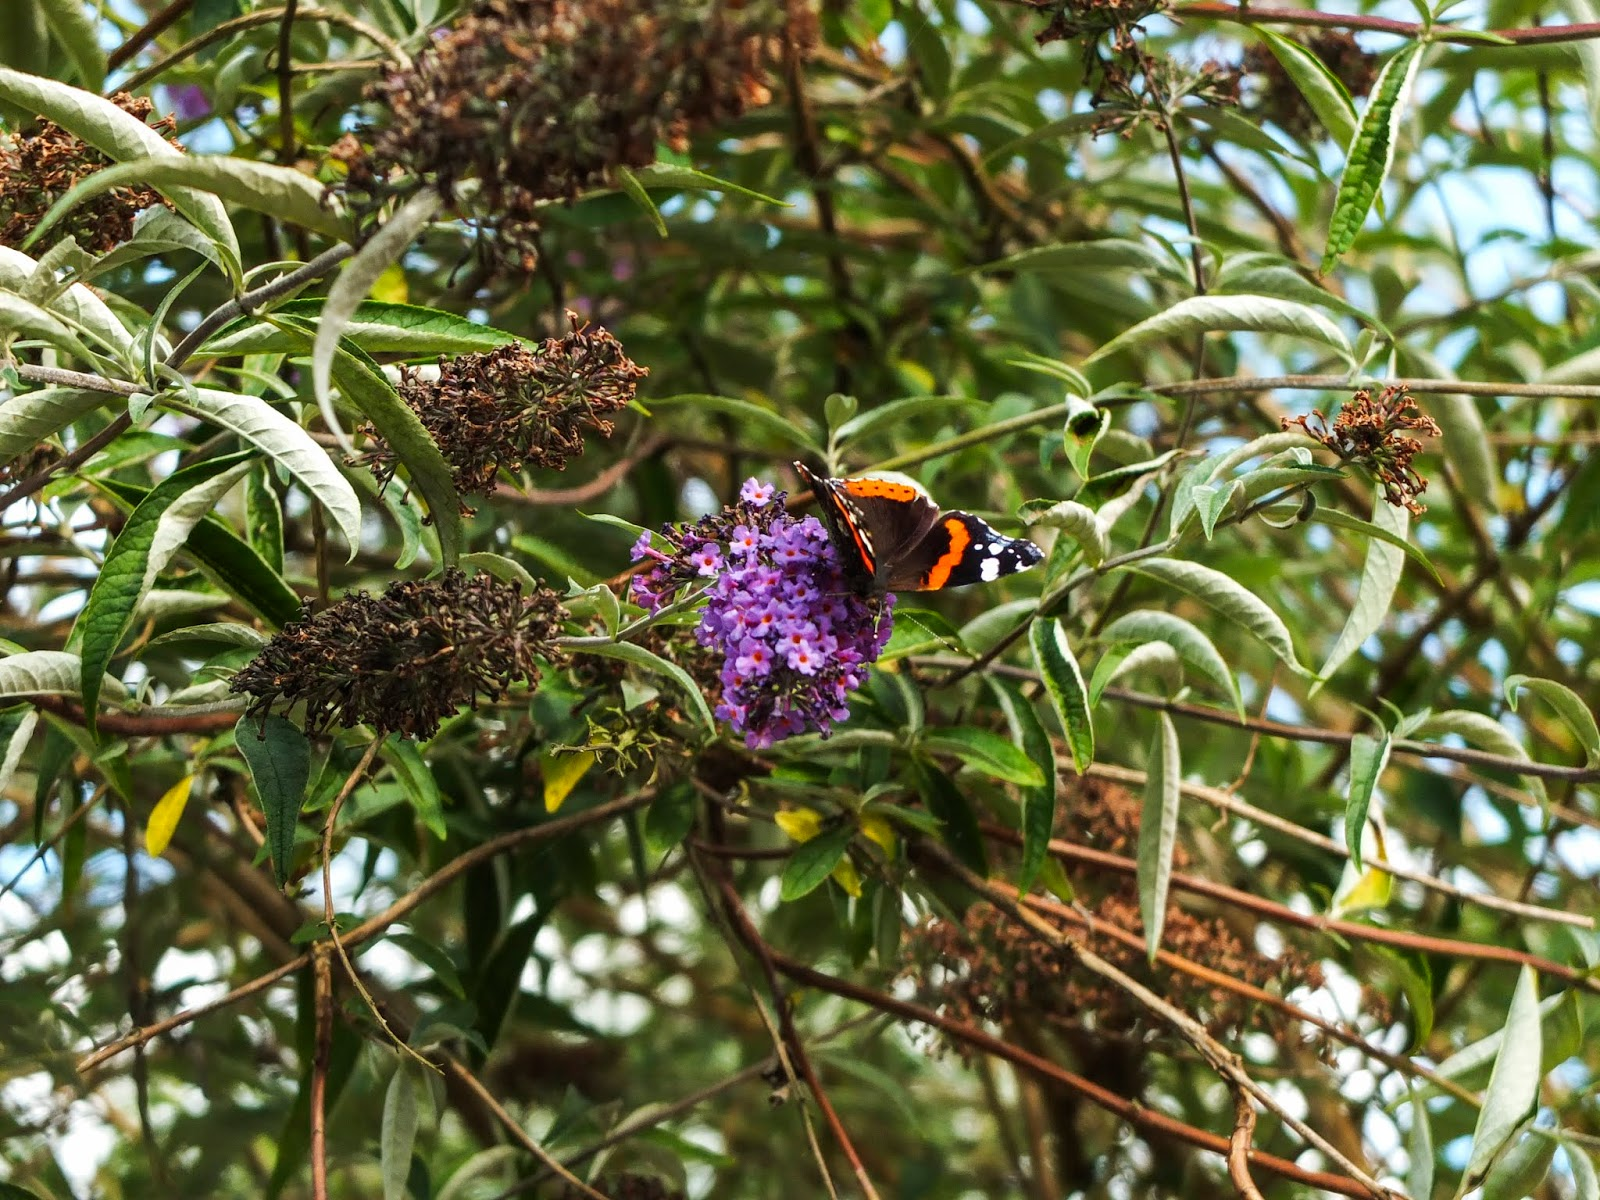 An orange and black butterfly on a purple butterfly bush flower.